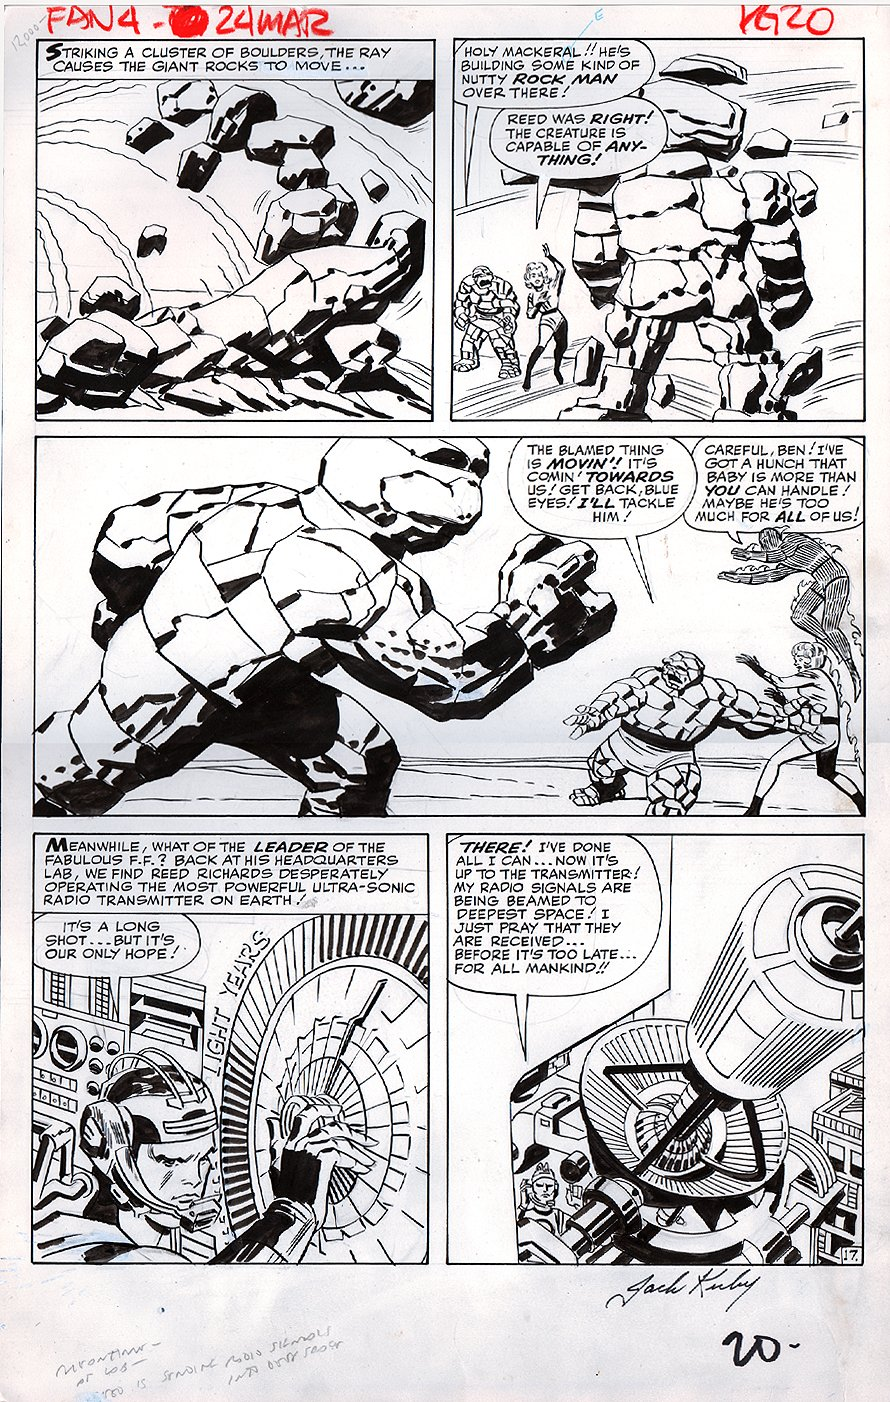 Fantastic Four #24 p 17 (LARGE ART) 1963